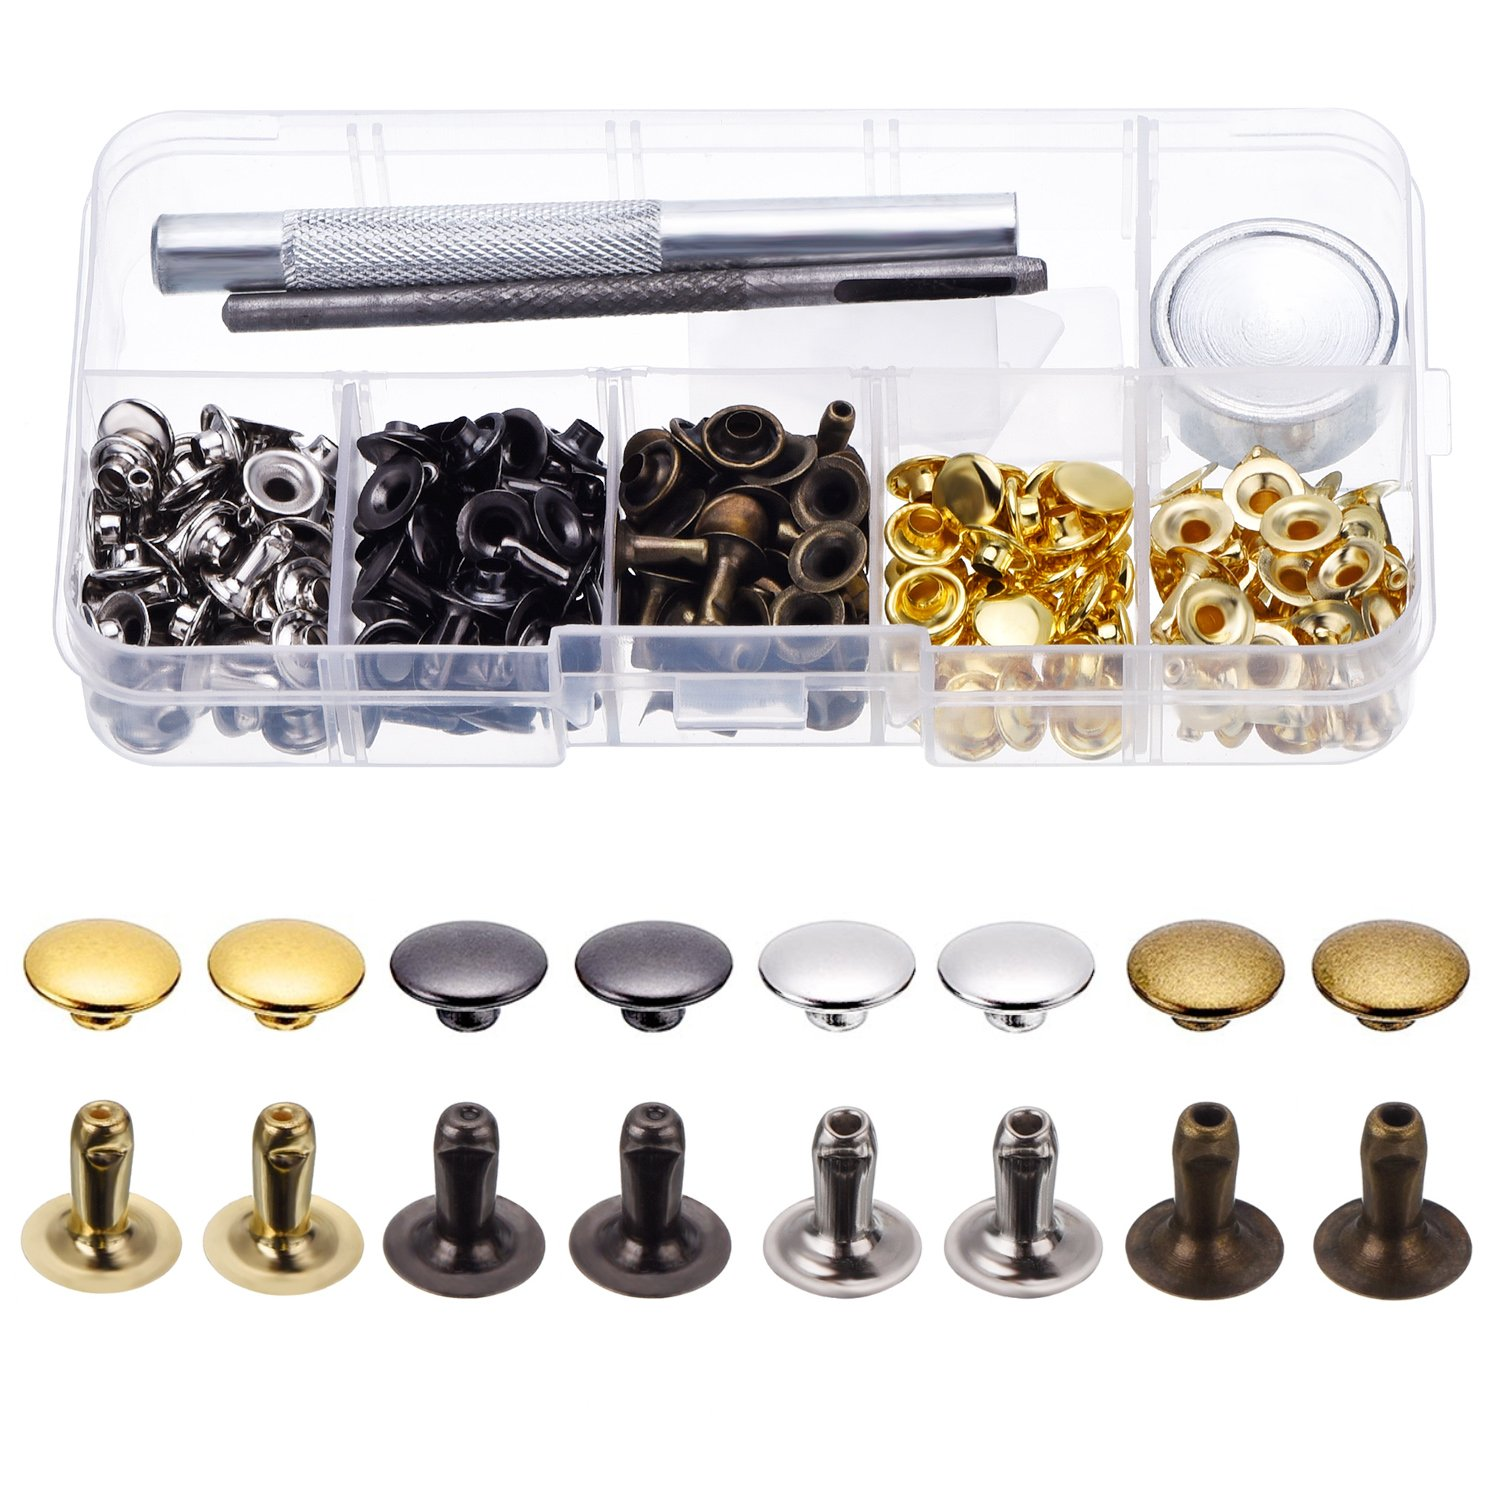 120 Set Leather Rivets Single Cap Rivets Tubular Metal Studs with Fixing Tool Kit for Leather Craft Repairing Decoration, 4 Color BBTO 4336863939